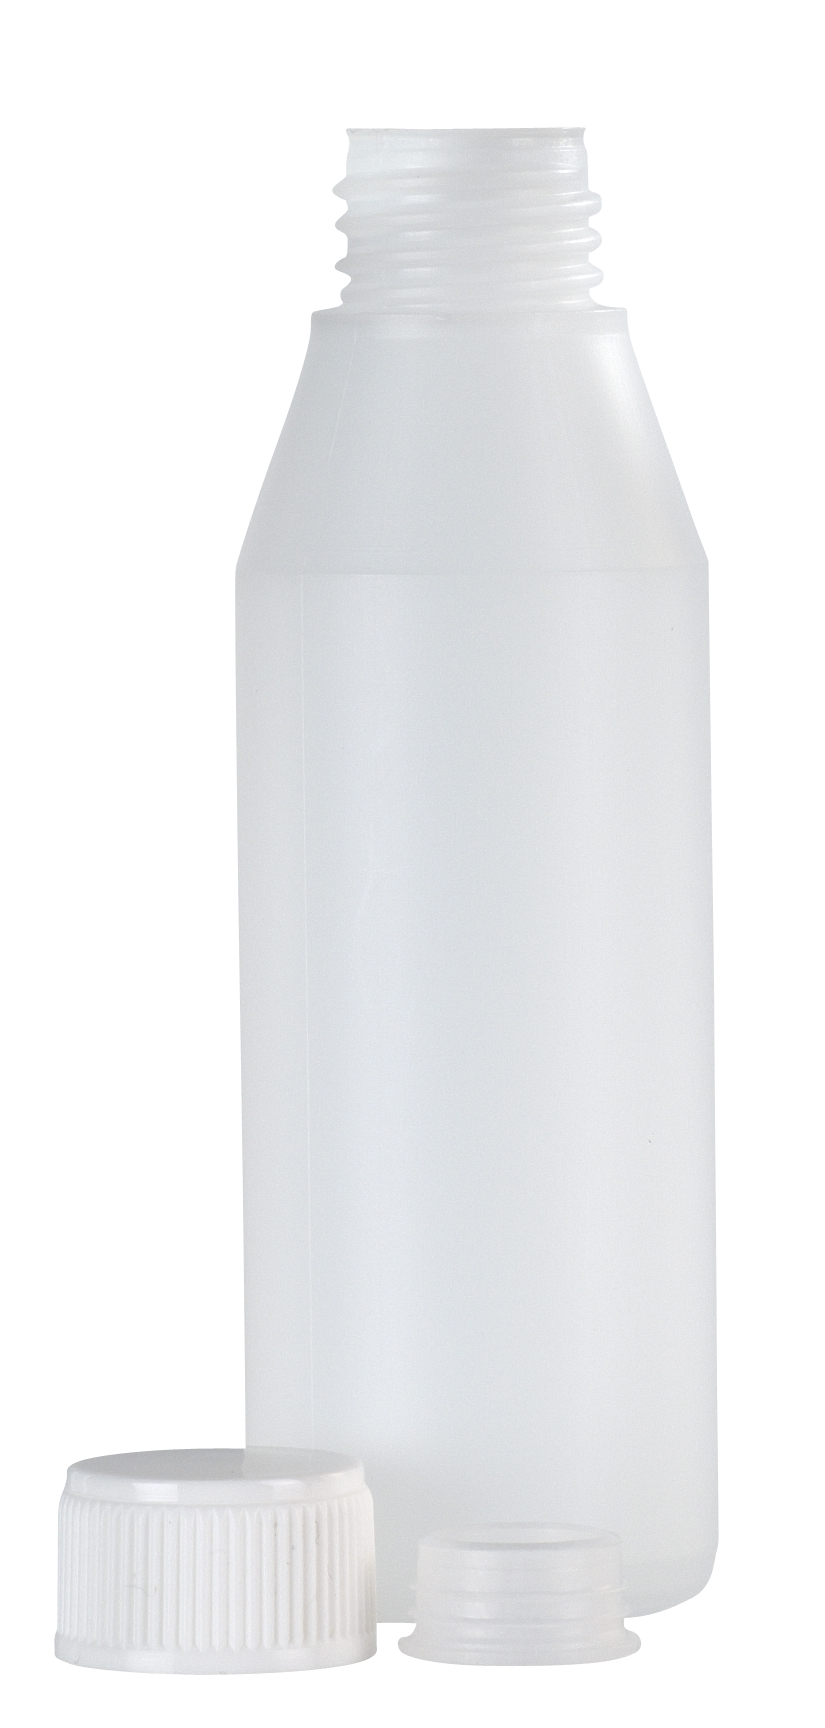 Plastic bottle with cap and insert, 100 ml.